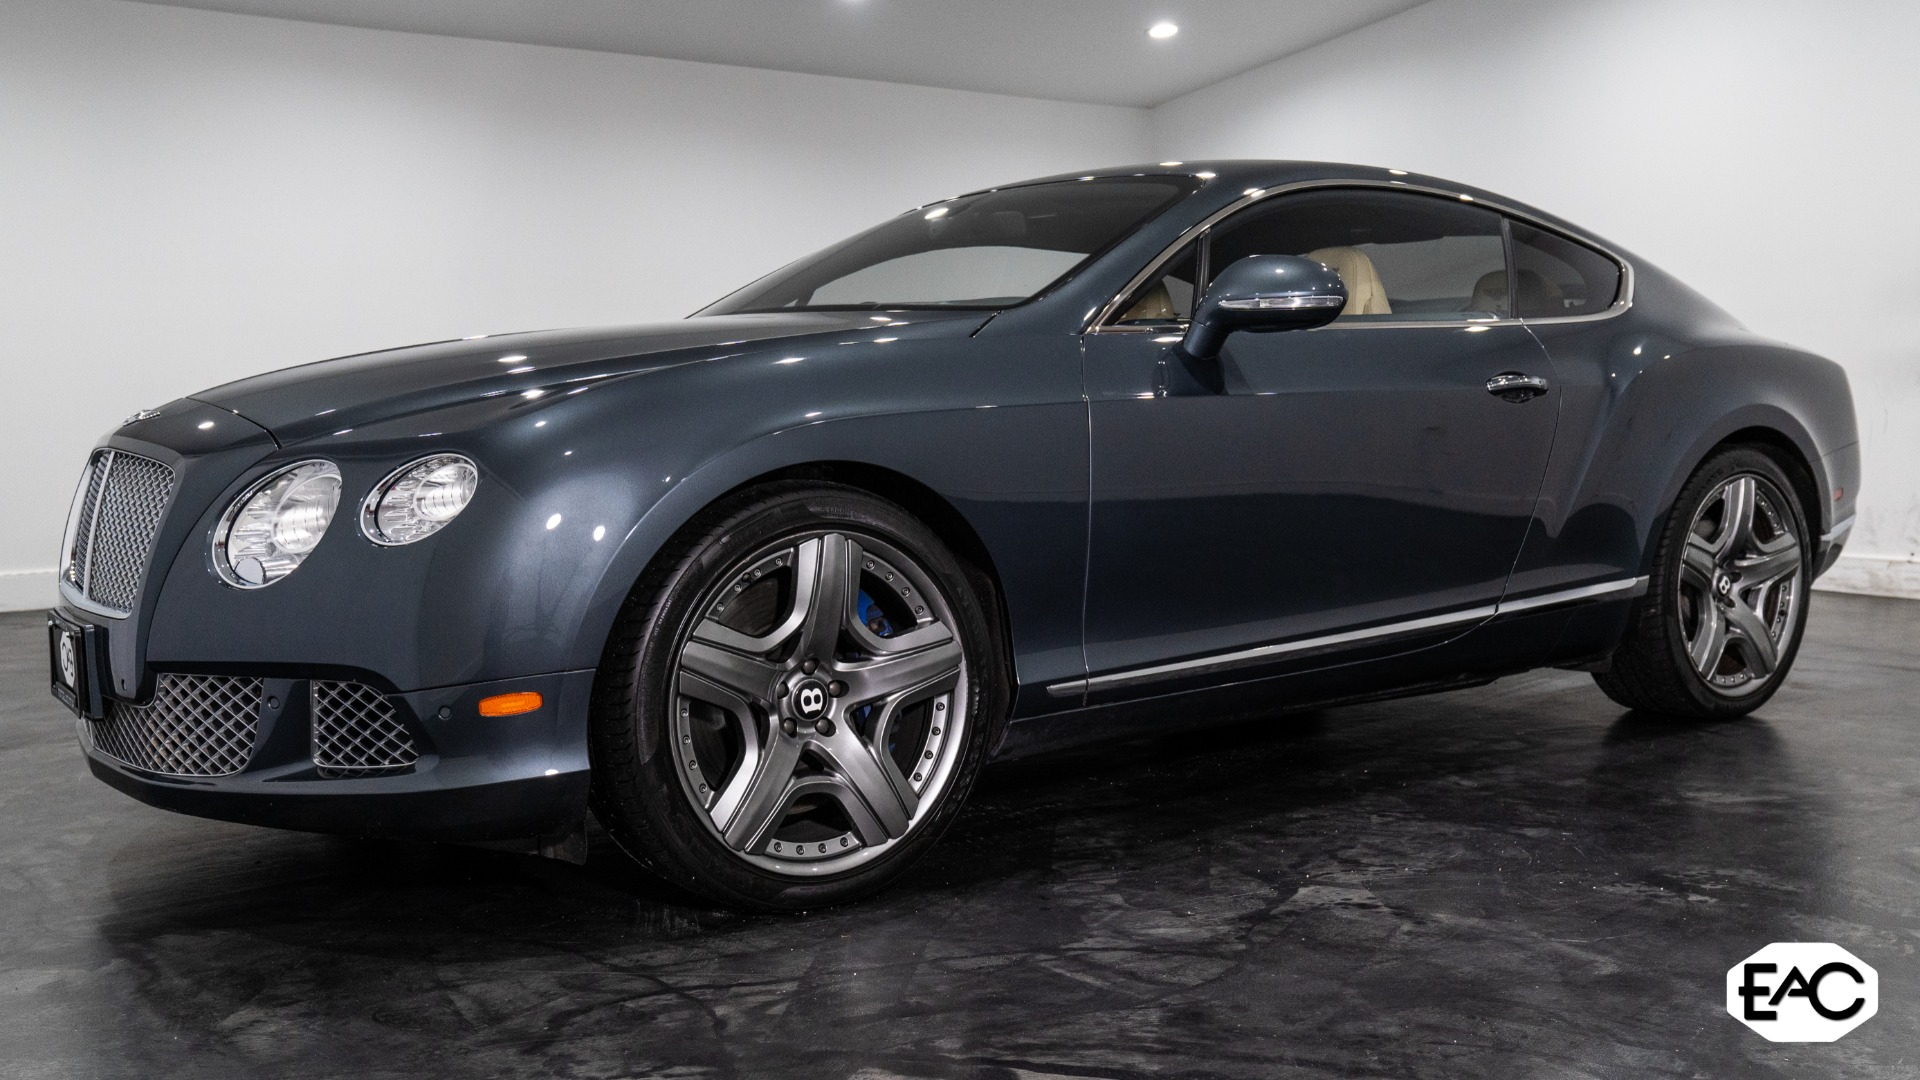 Used 2012 Bentley Continental GT for sale Sold at Empire Auto Collection in Warren MI 48091 1